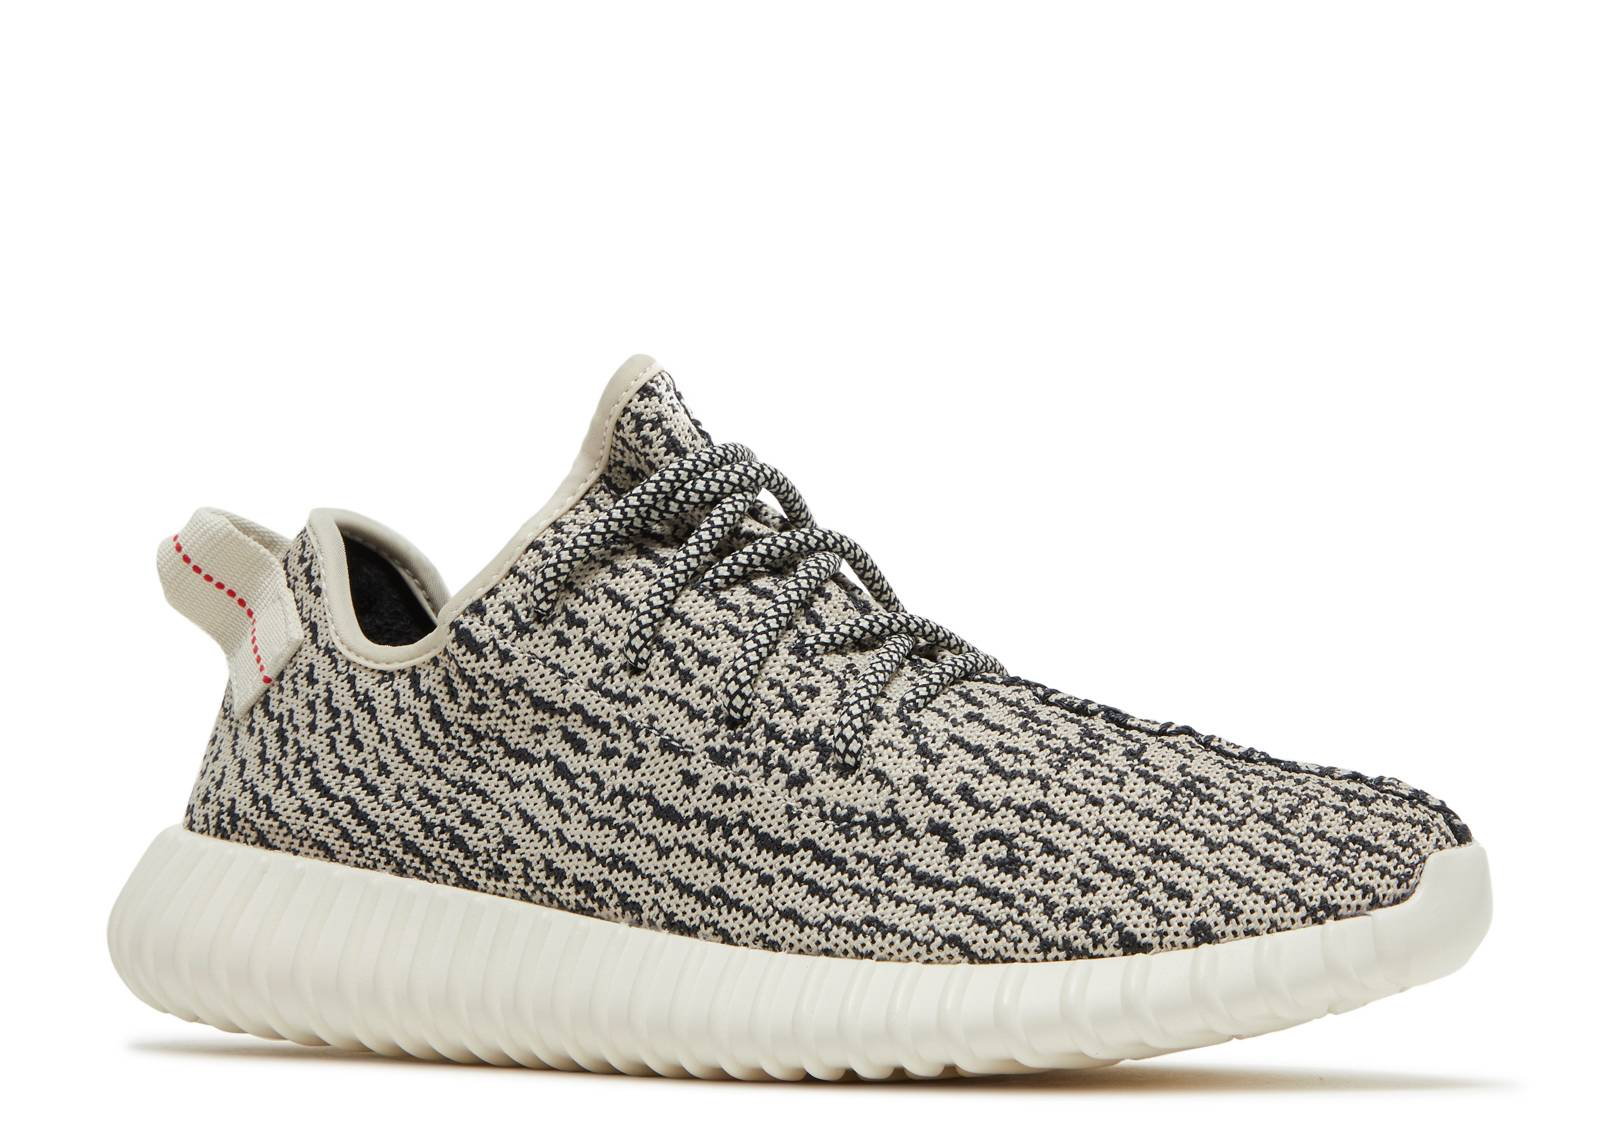 new arrivals best choice united kingdom Yeezy Boost 350